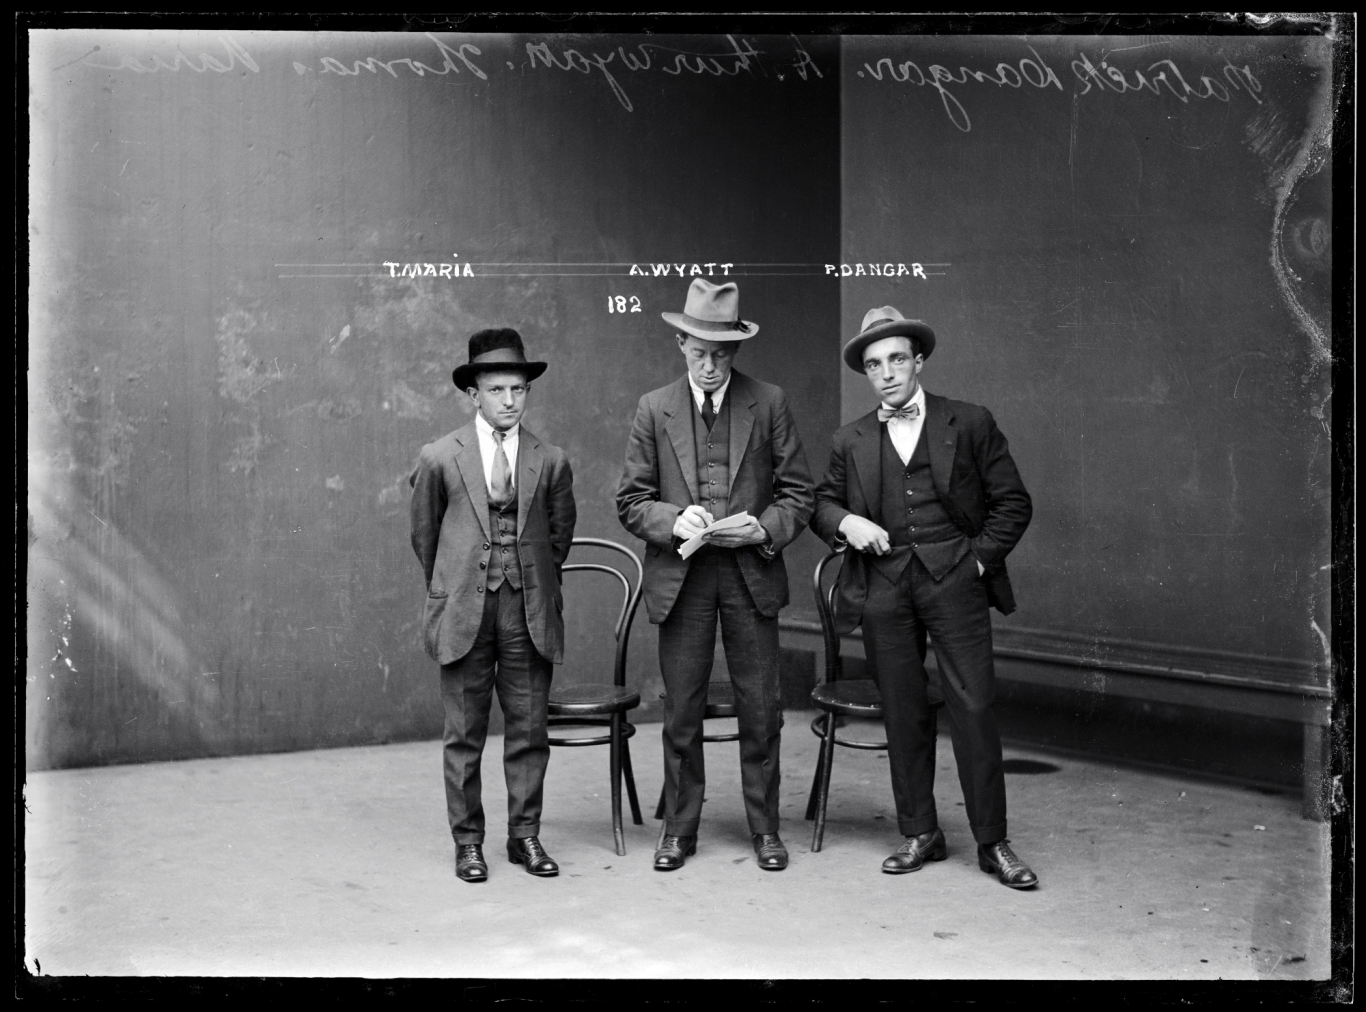 Black and white mugshot of three standing men.